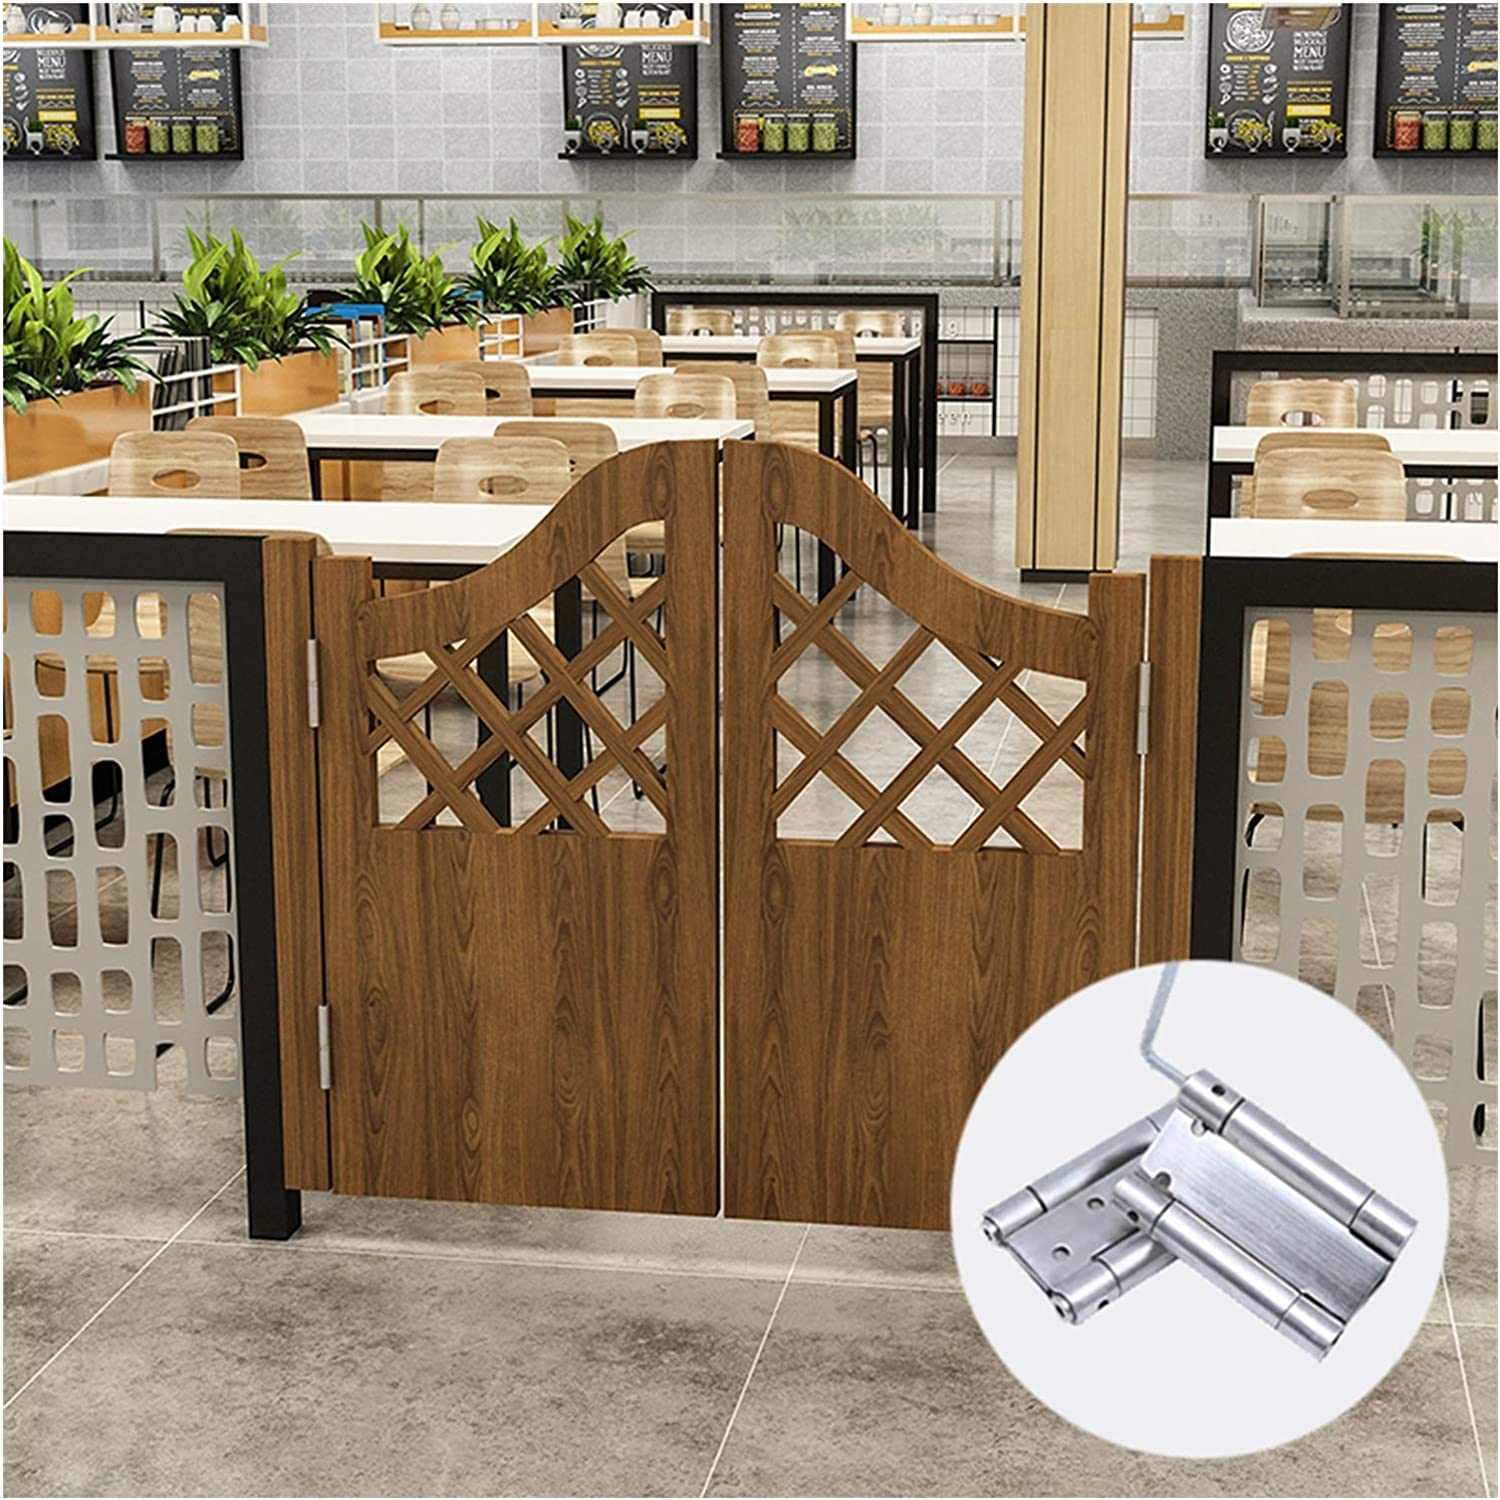 Saloon Cafe Limited time for free shipping Doors Solid Wood Cowboy Two-way Open Fenc Inventory cleanup selling sale Fence Gate